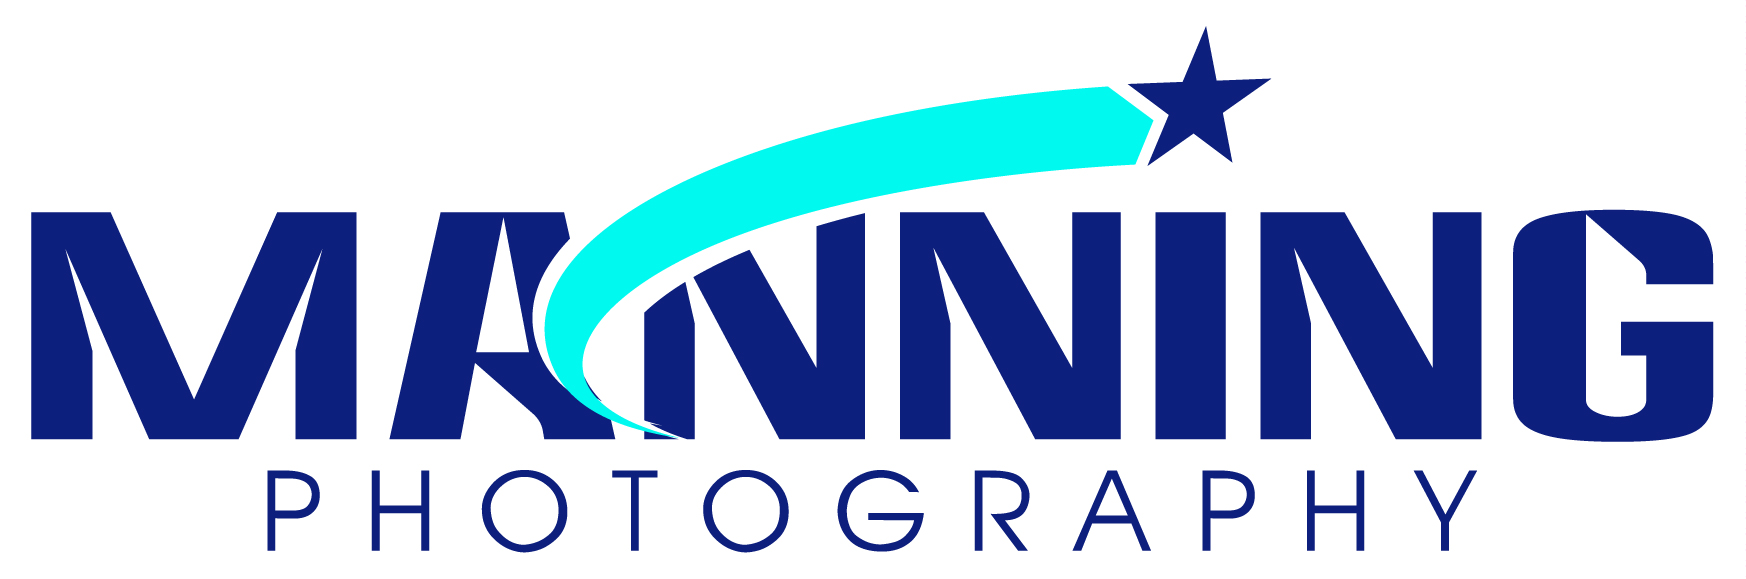 Manning Photography, LLC